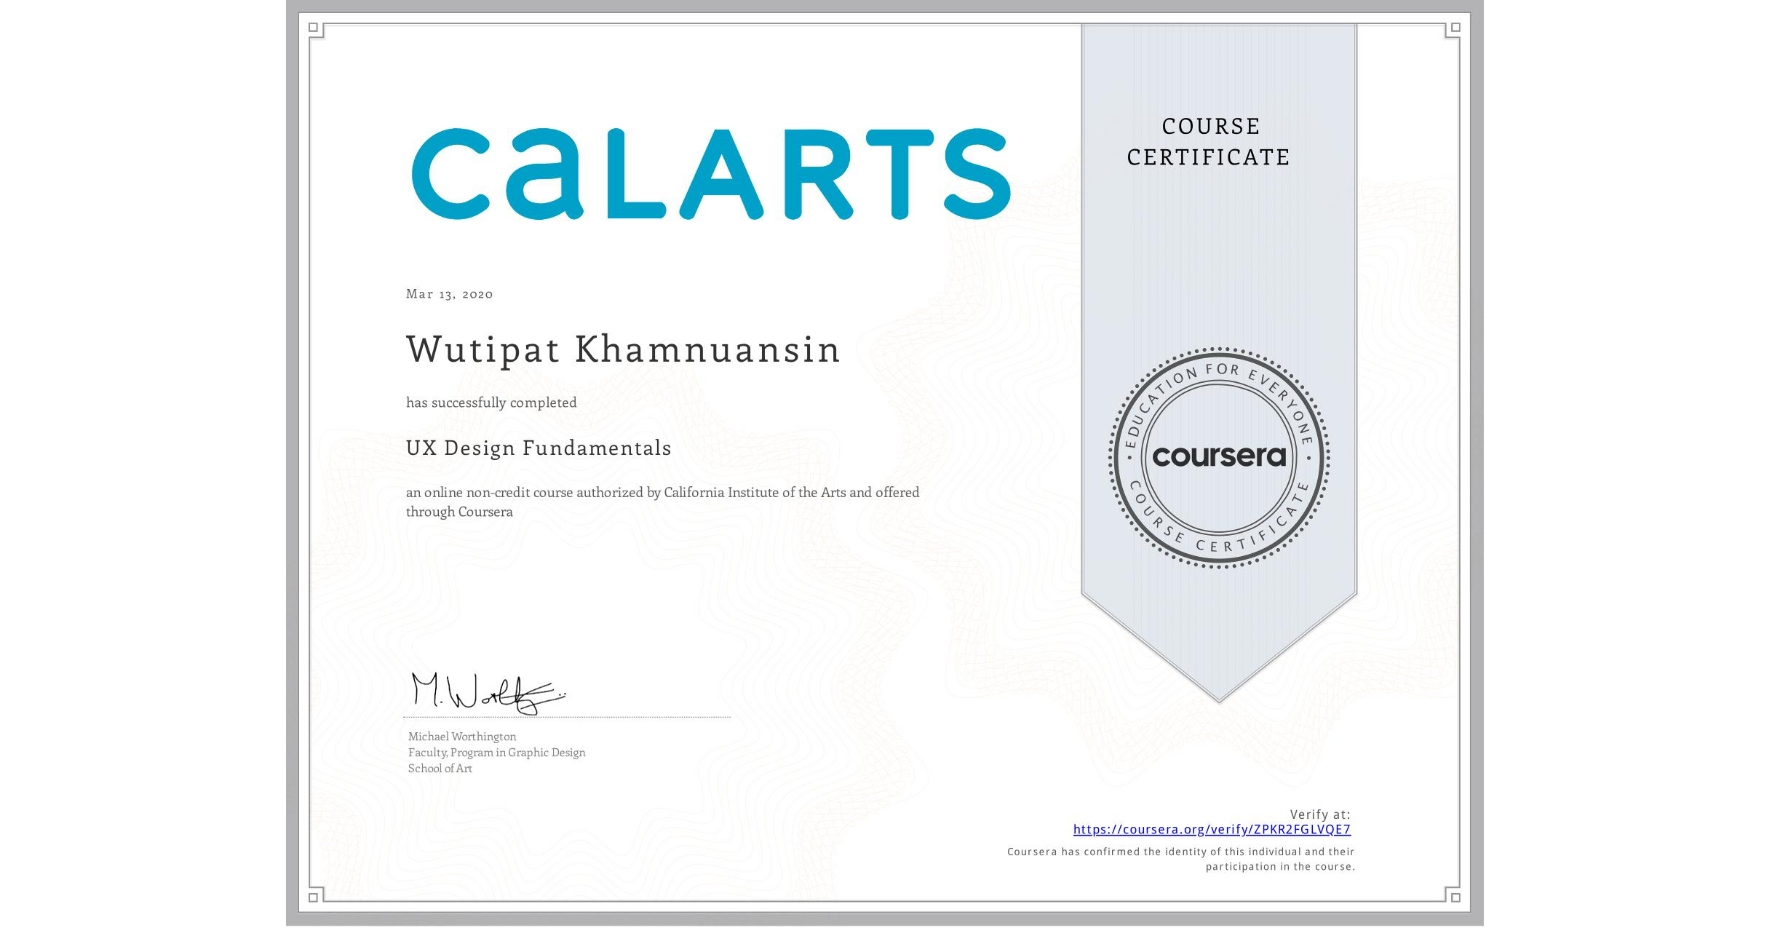 View certificate for Wutipat Khamnuansin, UX Design Fundamentals, an online non-credit course authorized by California Institute of the Arts and offered through Coursera